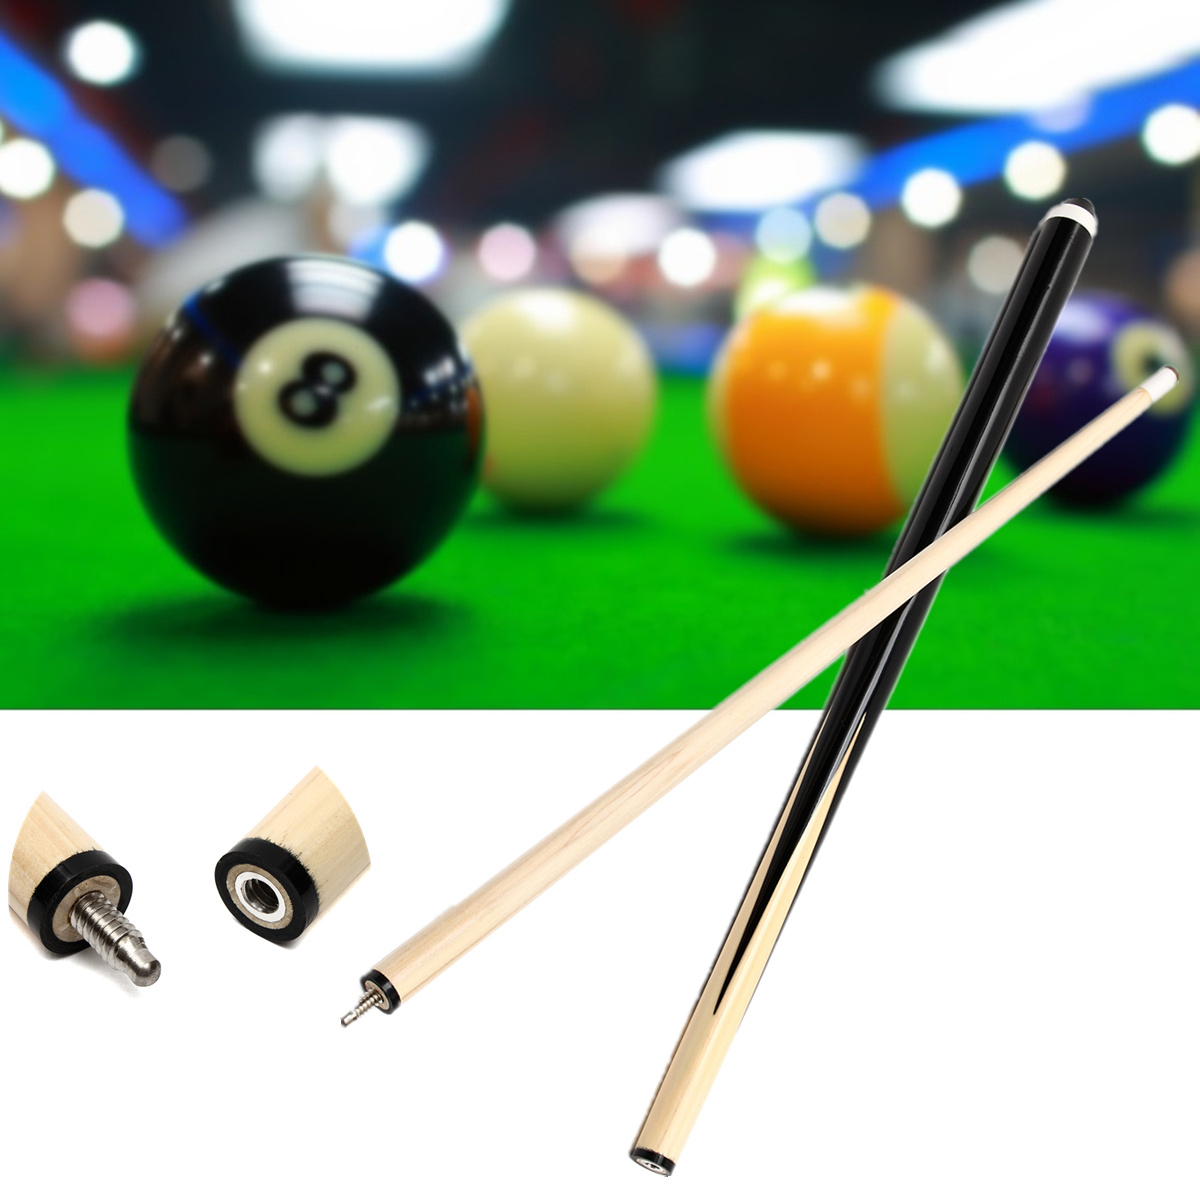 1 Pcs 48inch Short Wooden Pool Billiards Stick Snooker Billiard